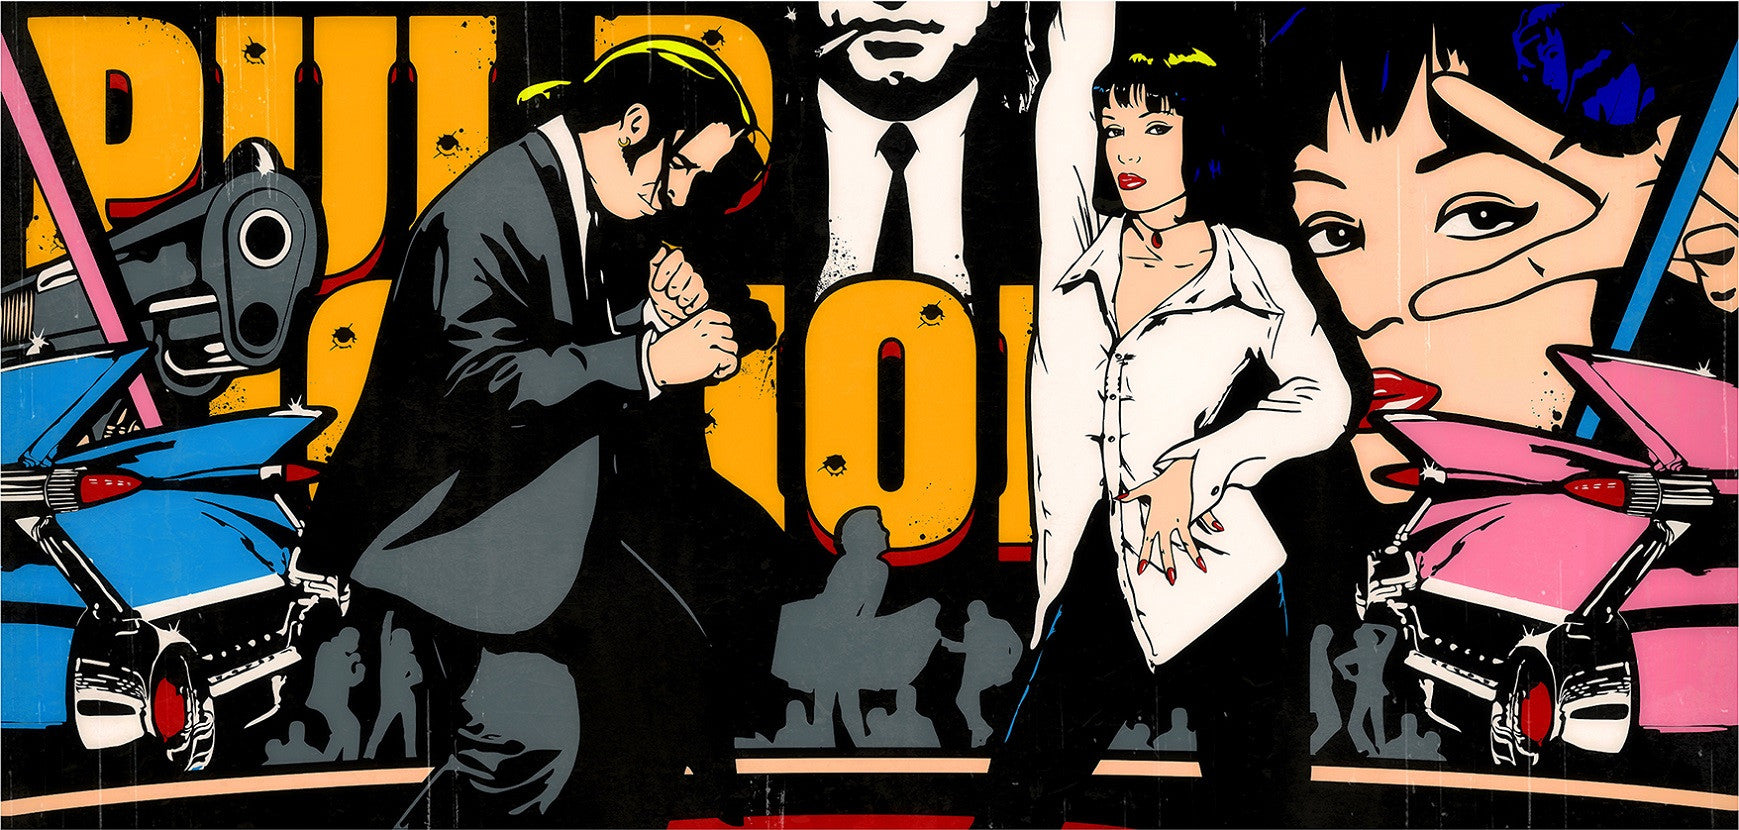 """Jack Rabbit Sims"" (Pulp Fiction) by JJ Adams (limited edition print) - New Look Art"